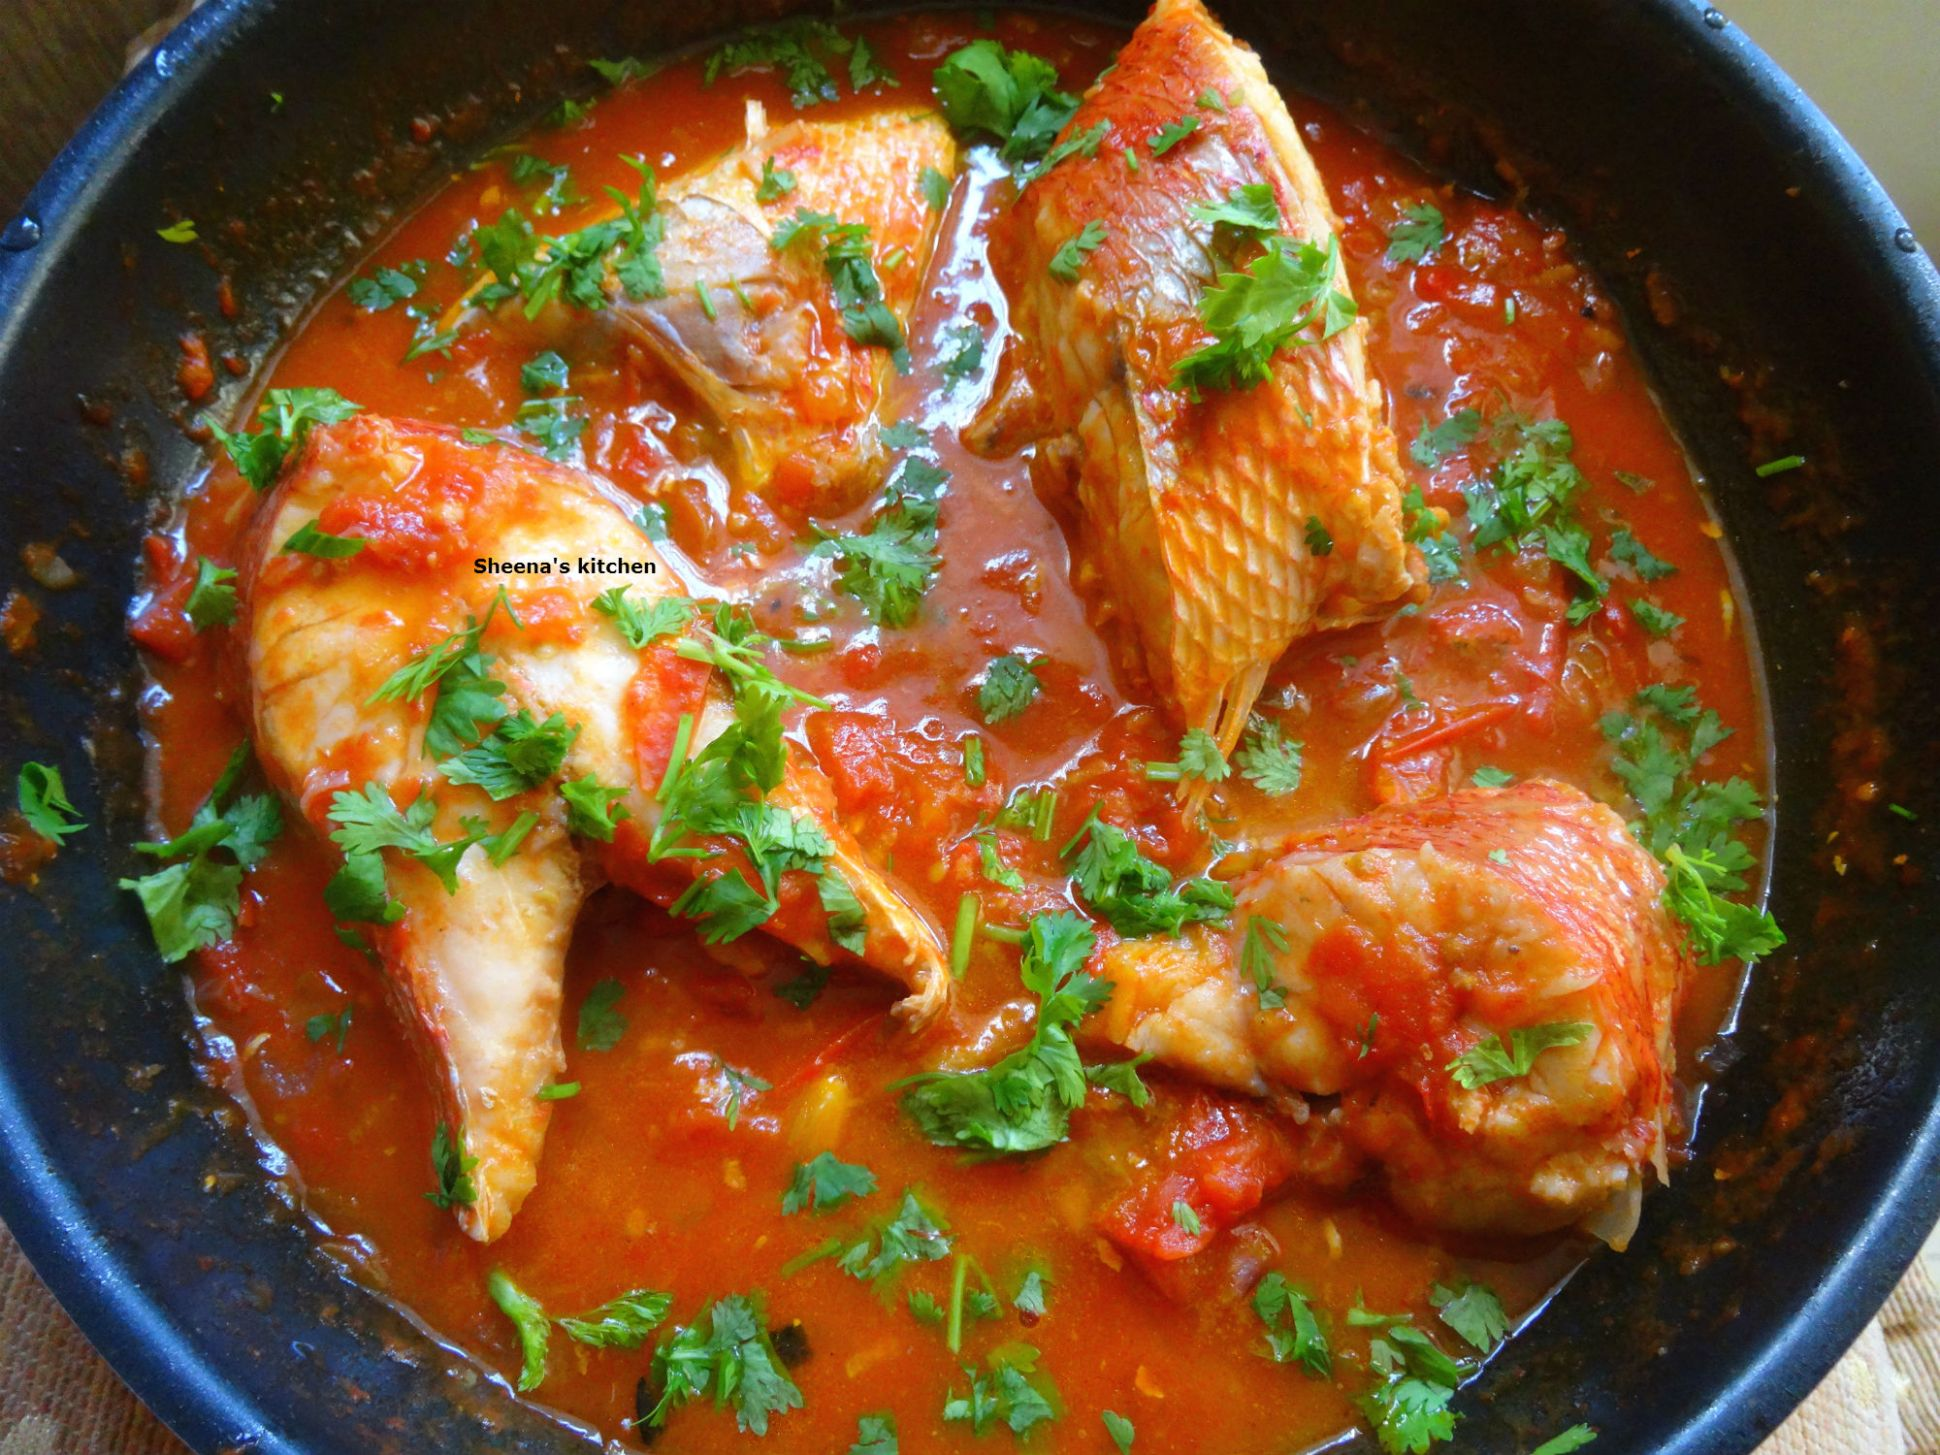 Fish Stew Kenya Style - Sheena's Kitchen